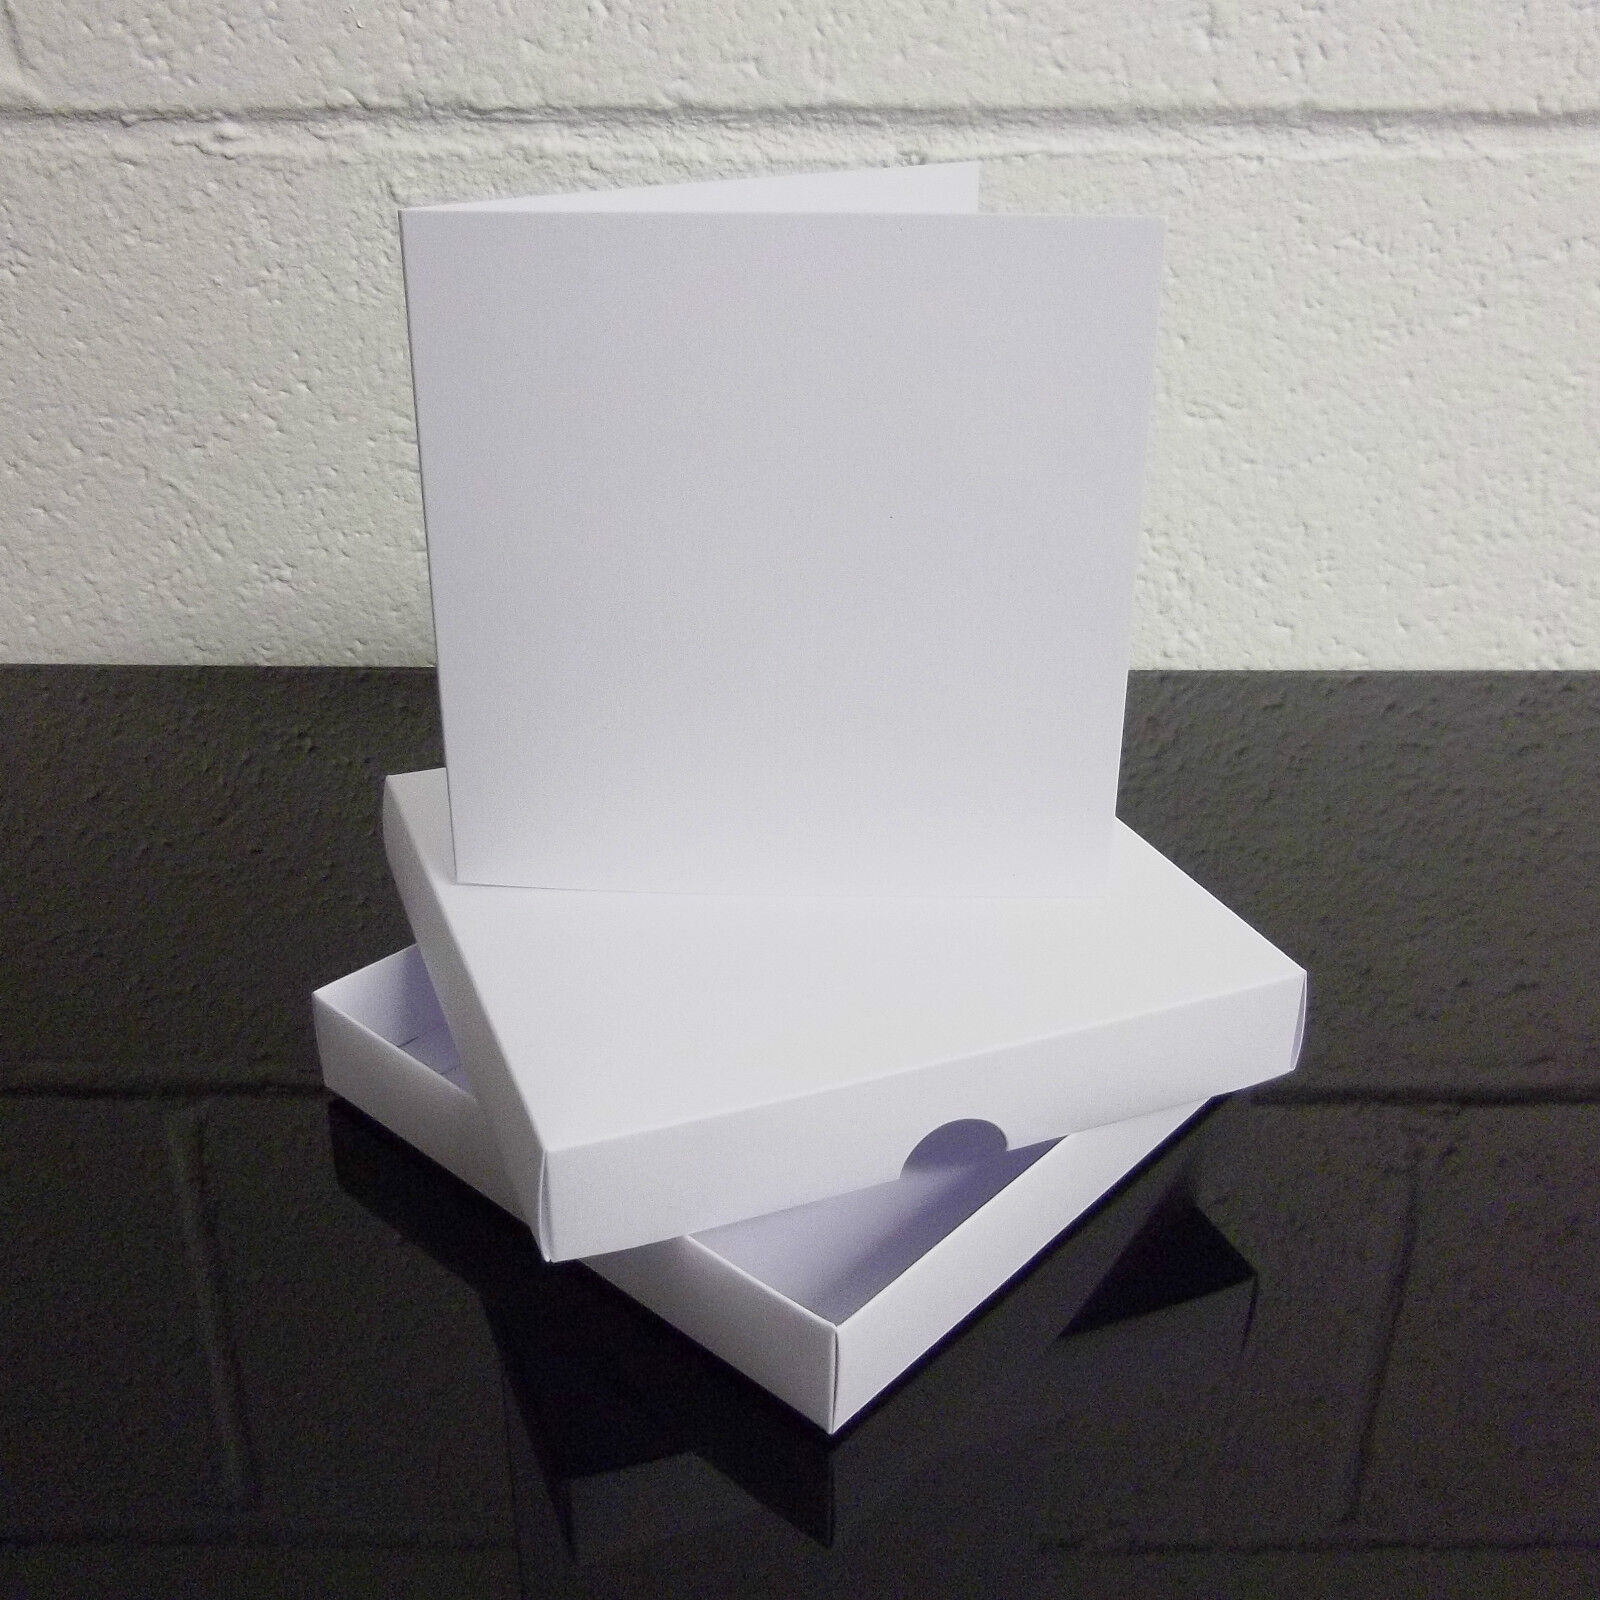 7  x 7  Weiß Greeting Card Box   Wedding Invite Box With Cards Choose Quantity